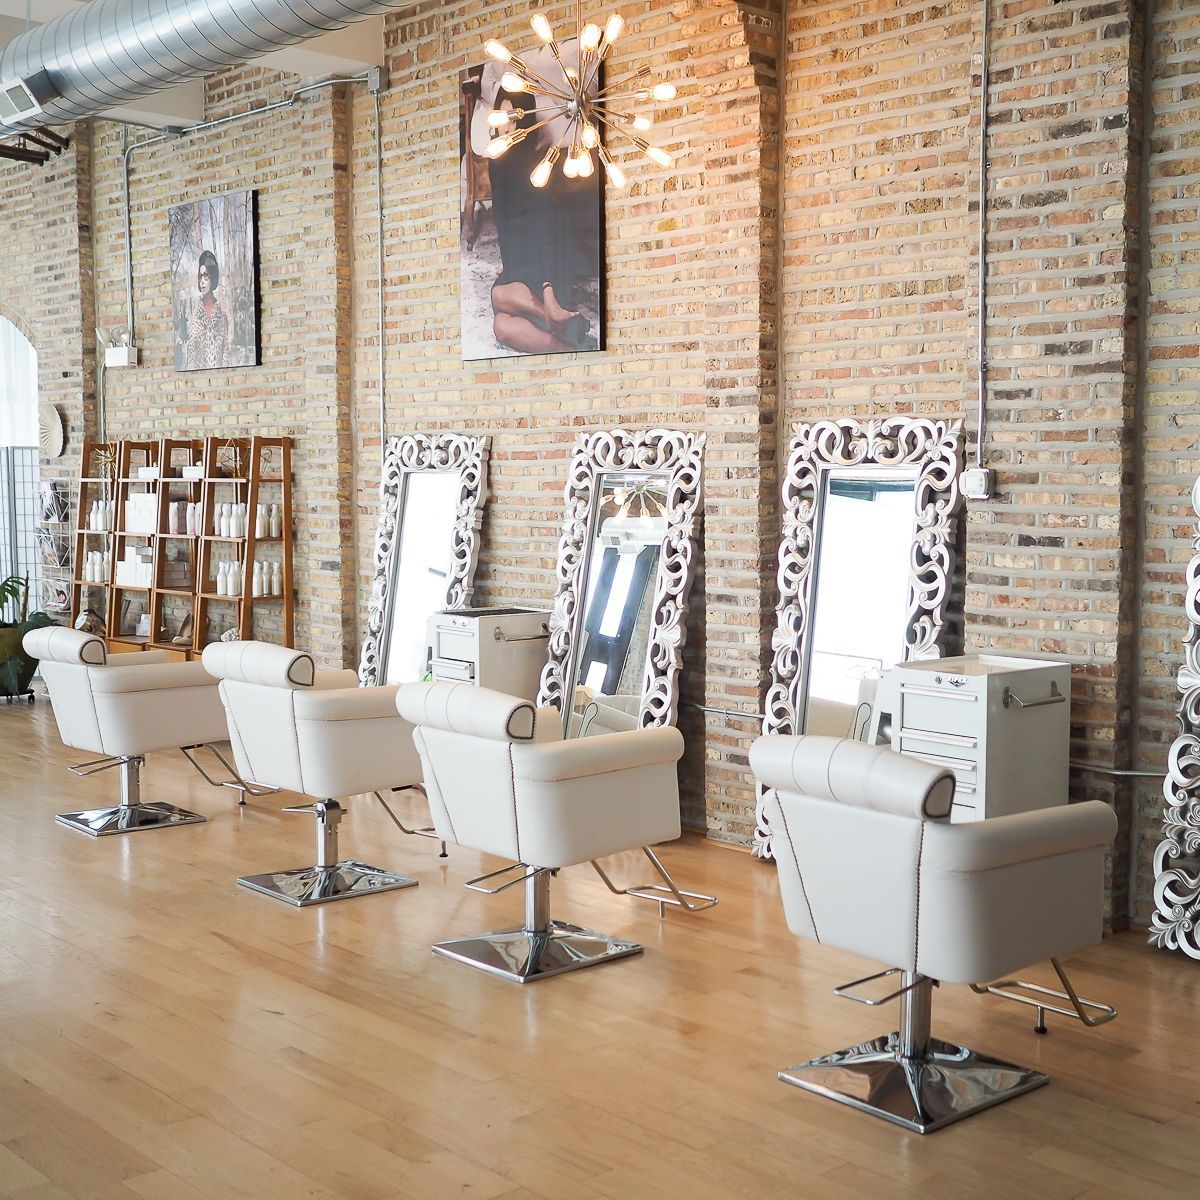 Our Chicago Makeup Studio We Offer Makeup Classes Weddings Bridal Makeup Airbrush Makeup And All Other Makeup Makeup Studio Beauty Room Artist Studio Decor